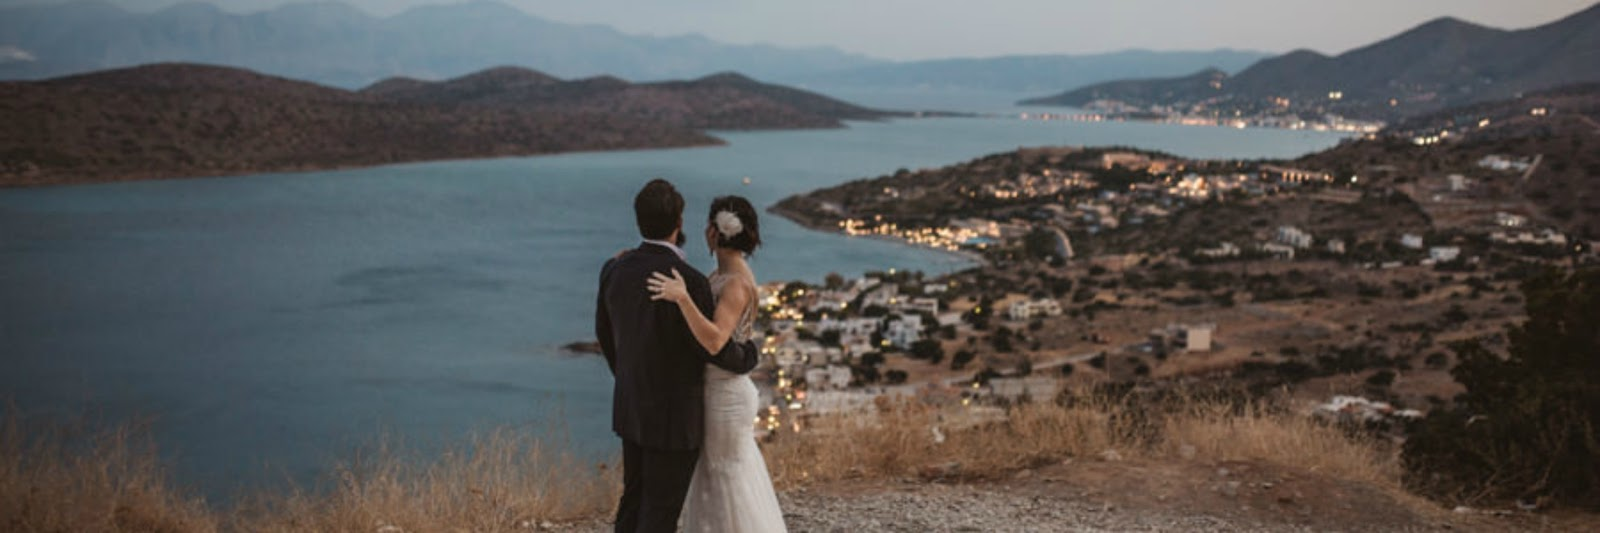 Greek Island Wedding Katja and Simon Wedding Photography